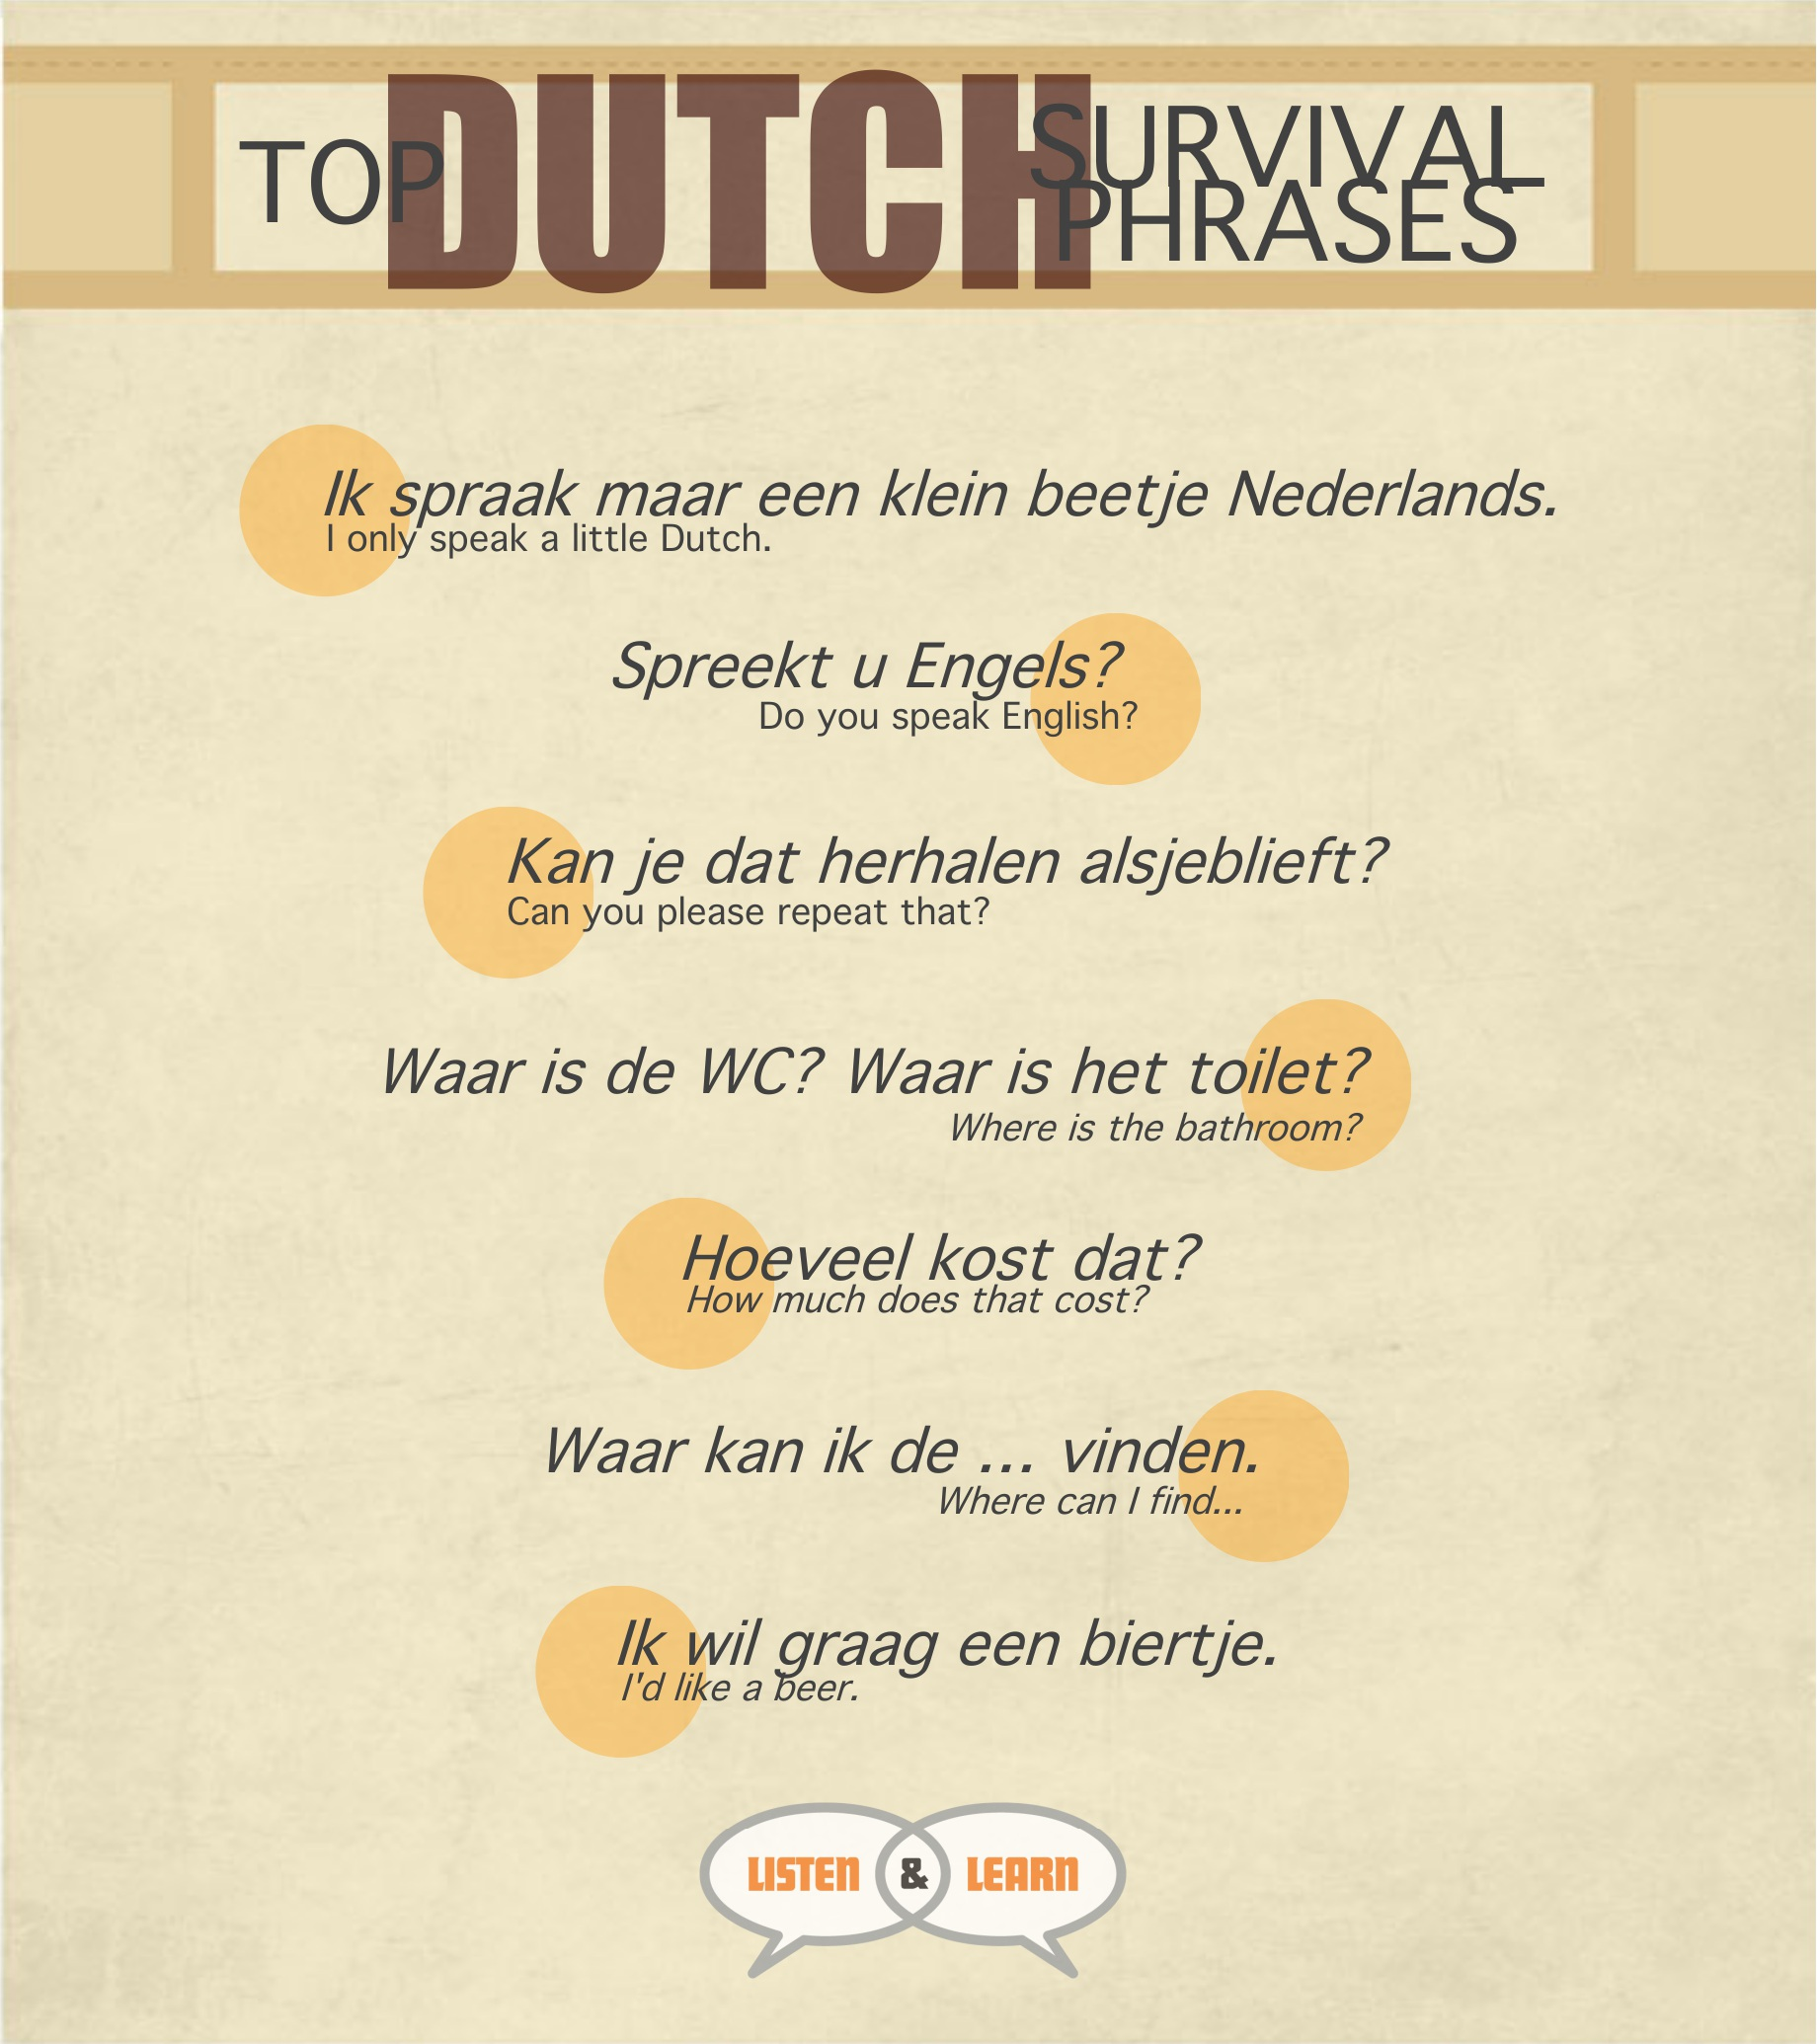 Top Dutch Survival Phrases Listen Learn Aus Blog